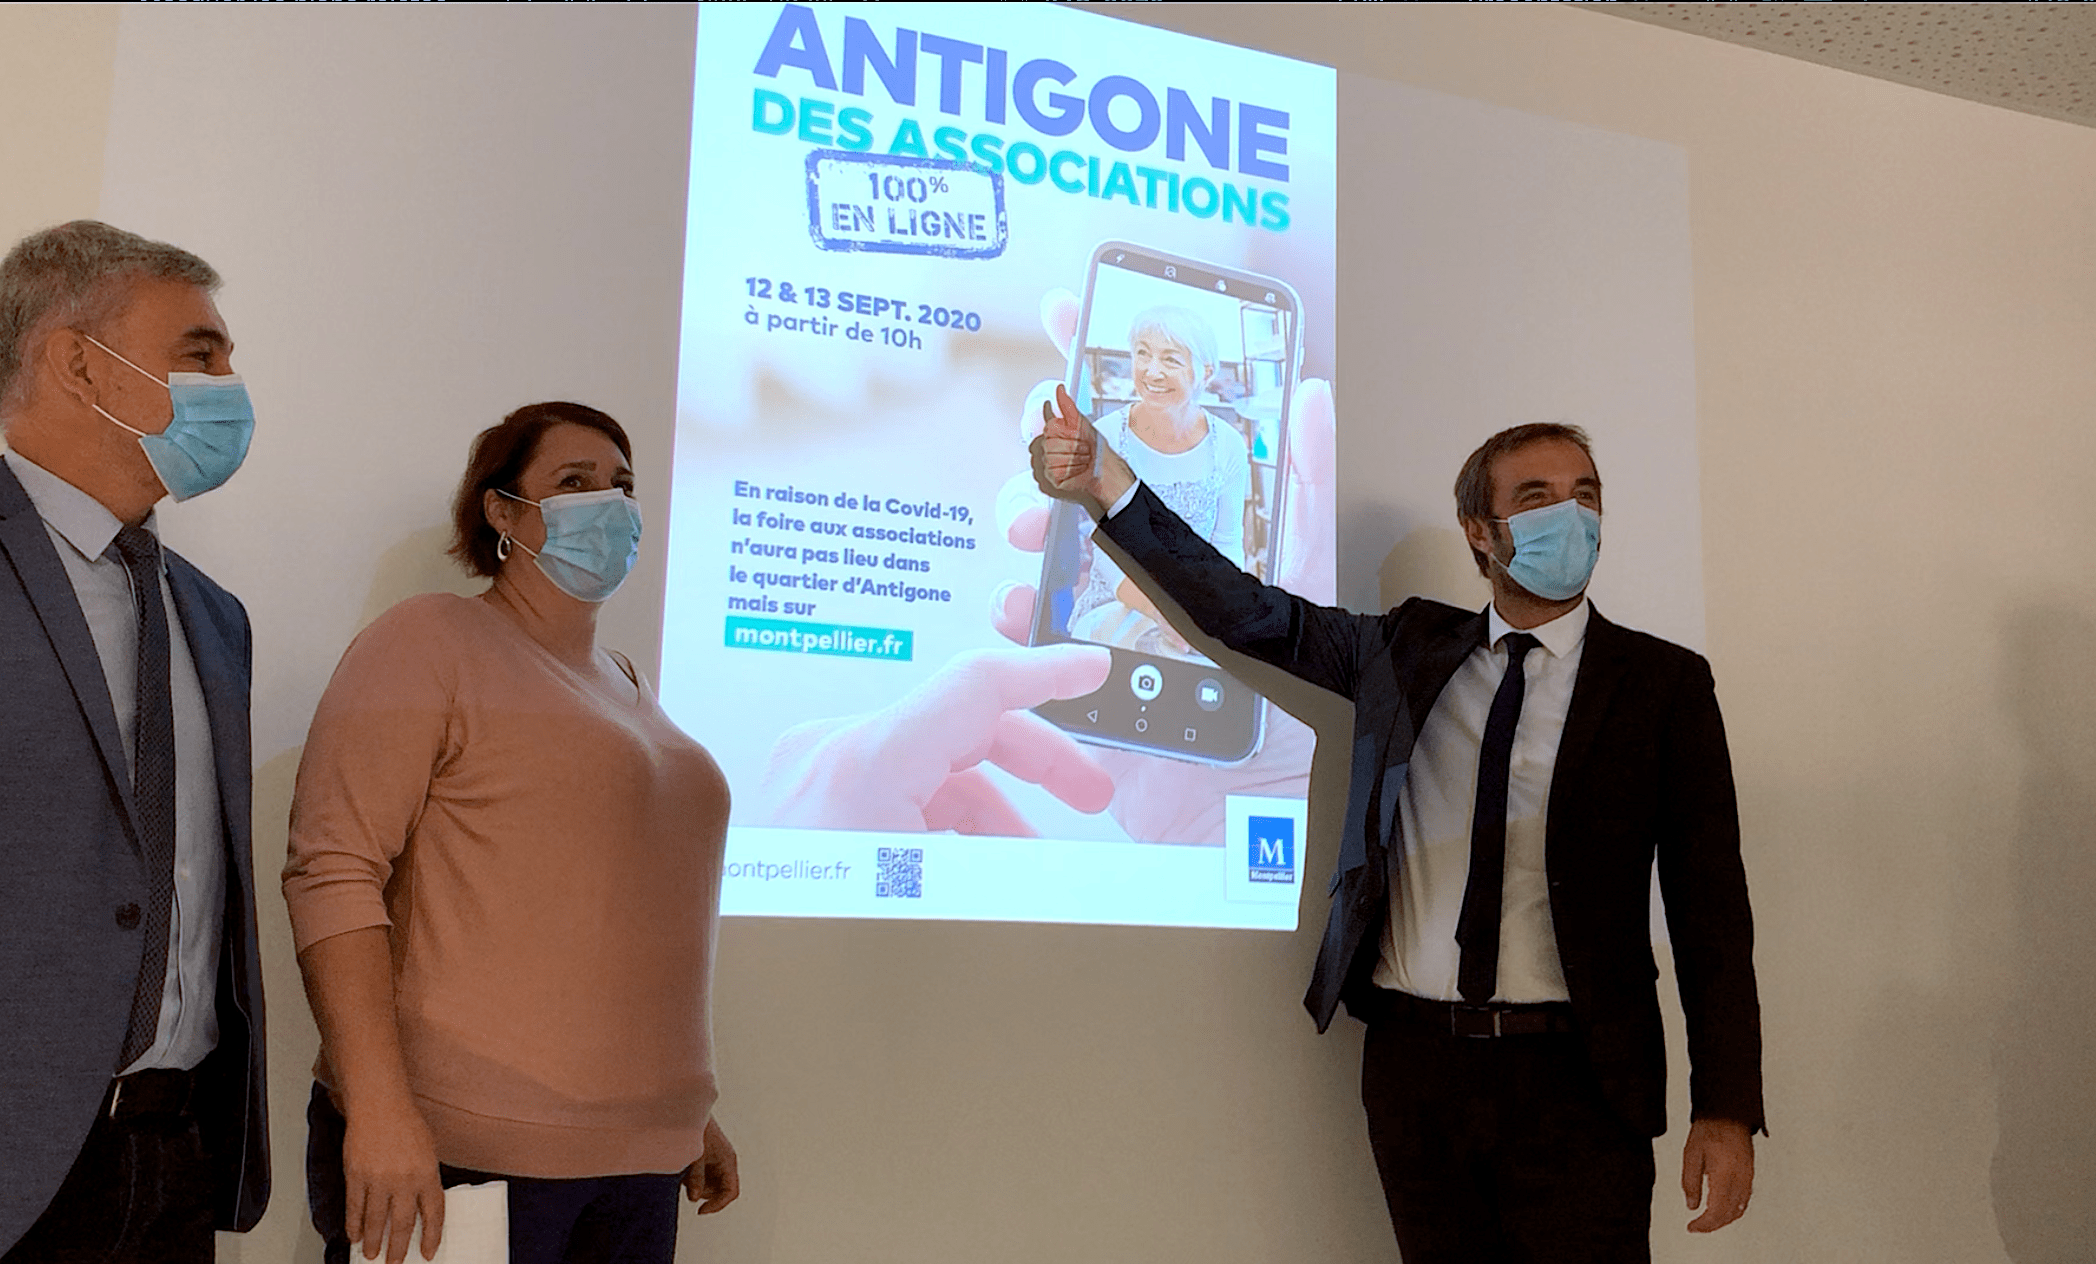 Antigone des associations 2020 lancement digital ©JPVallespir